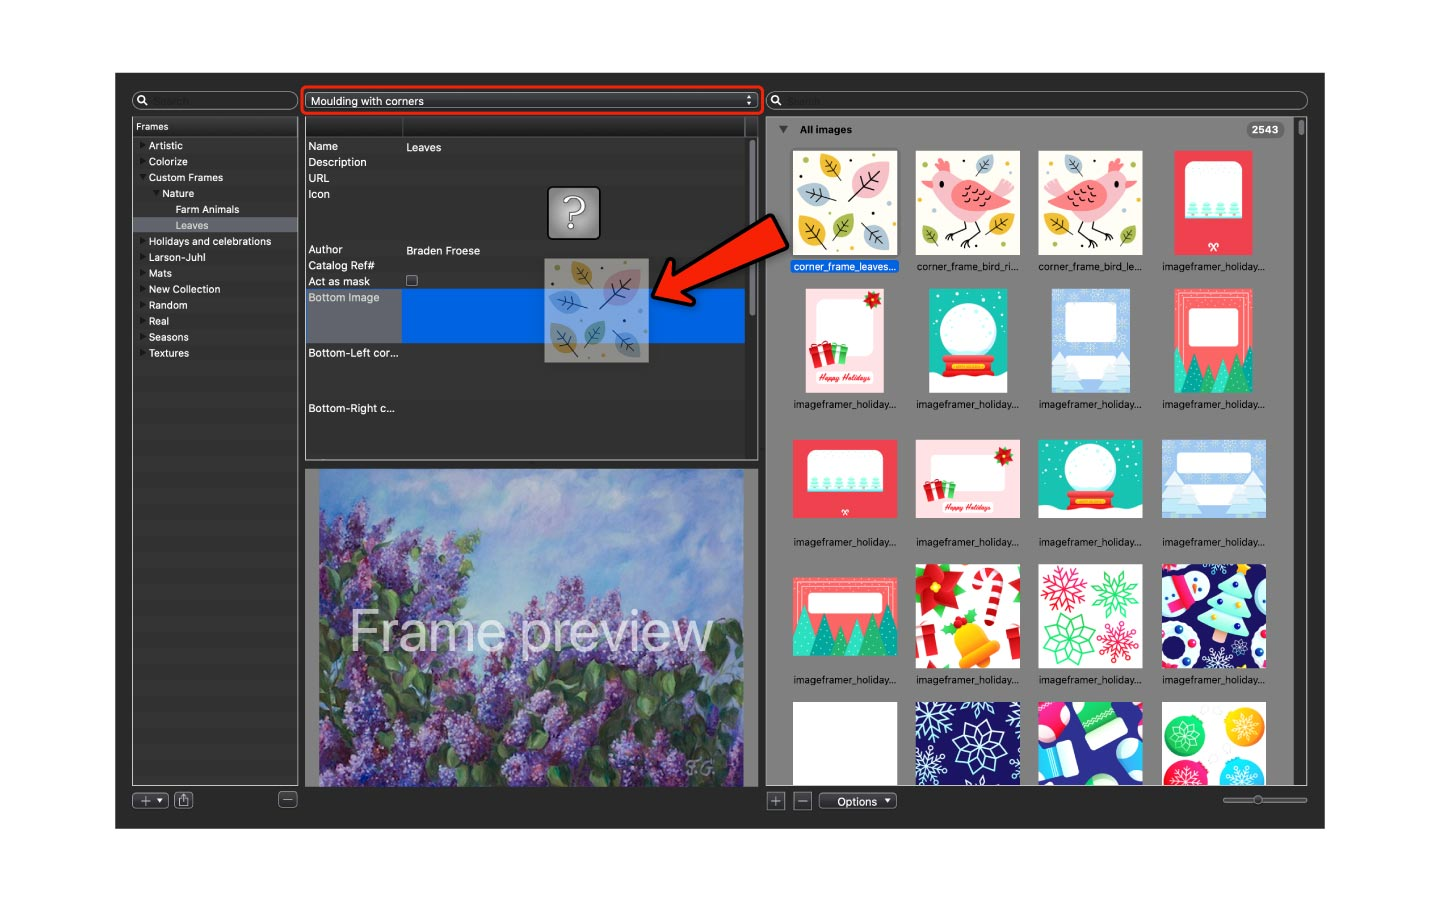 Place your image into the frame properties panel in ImageFramer